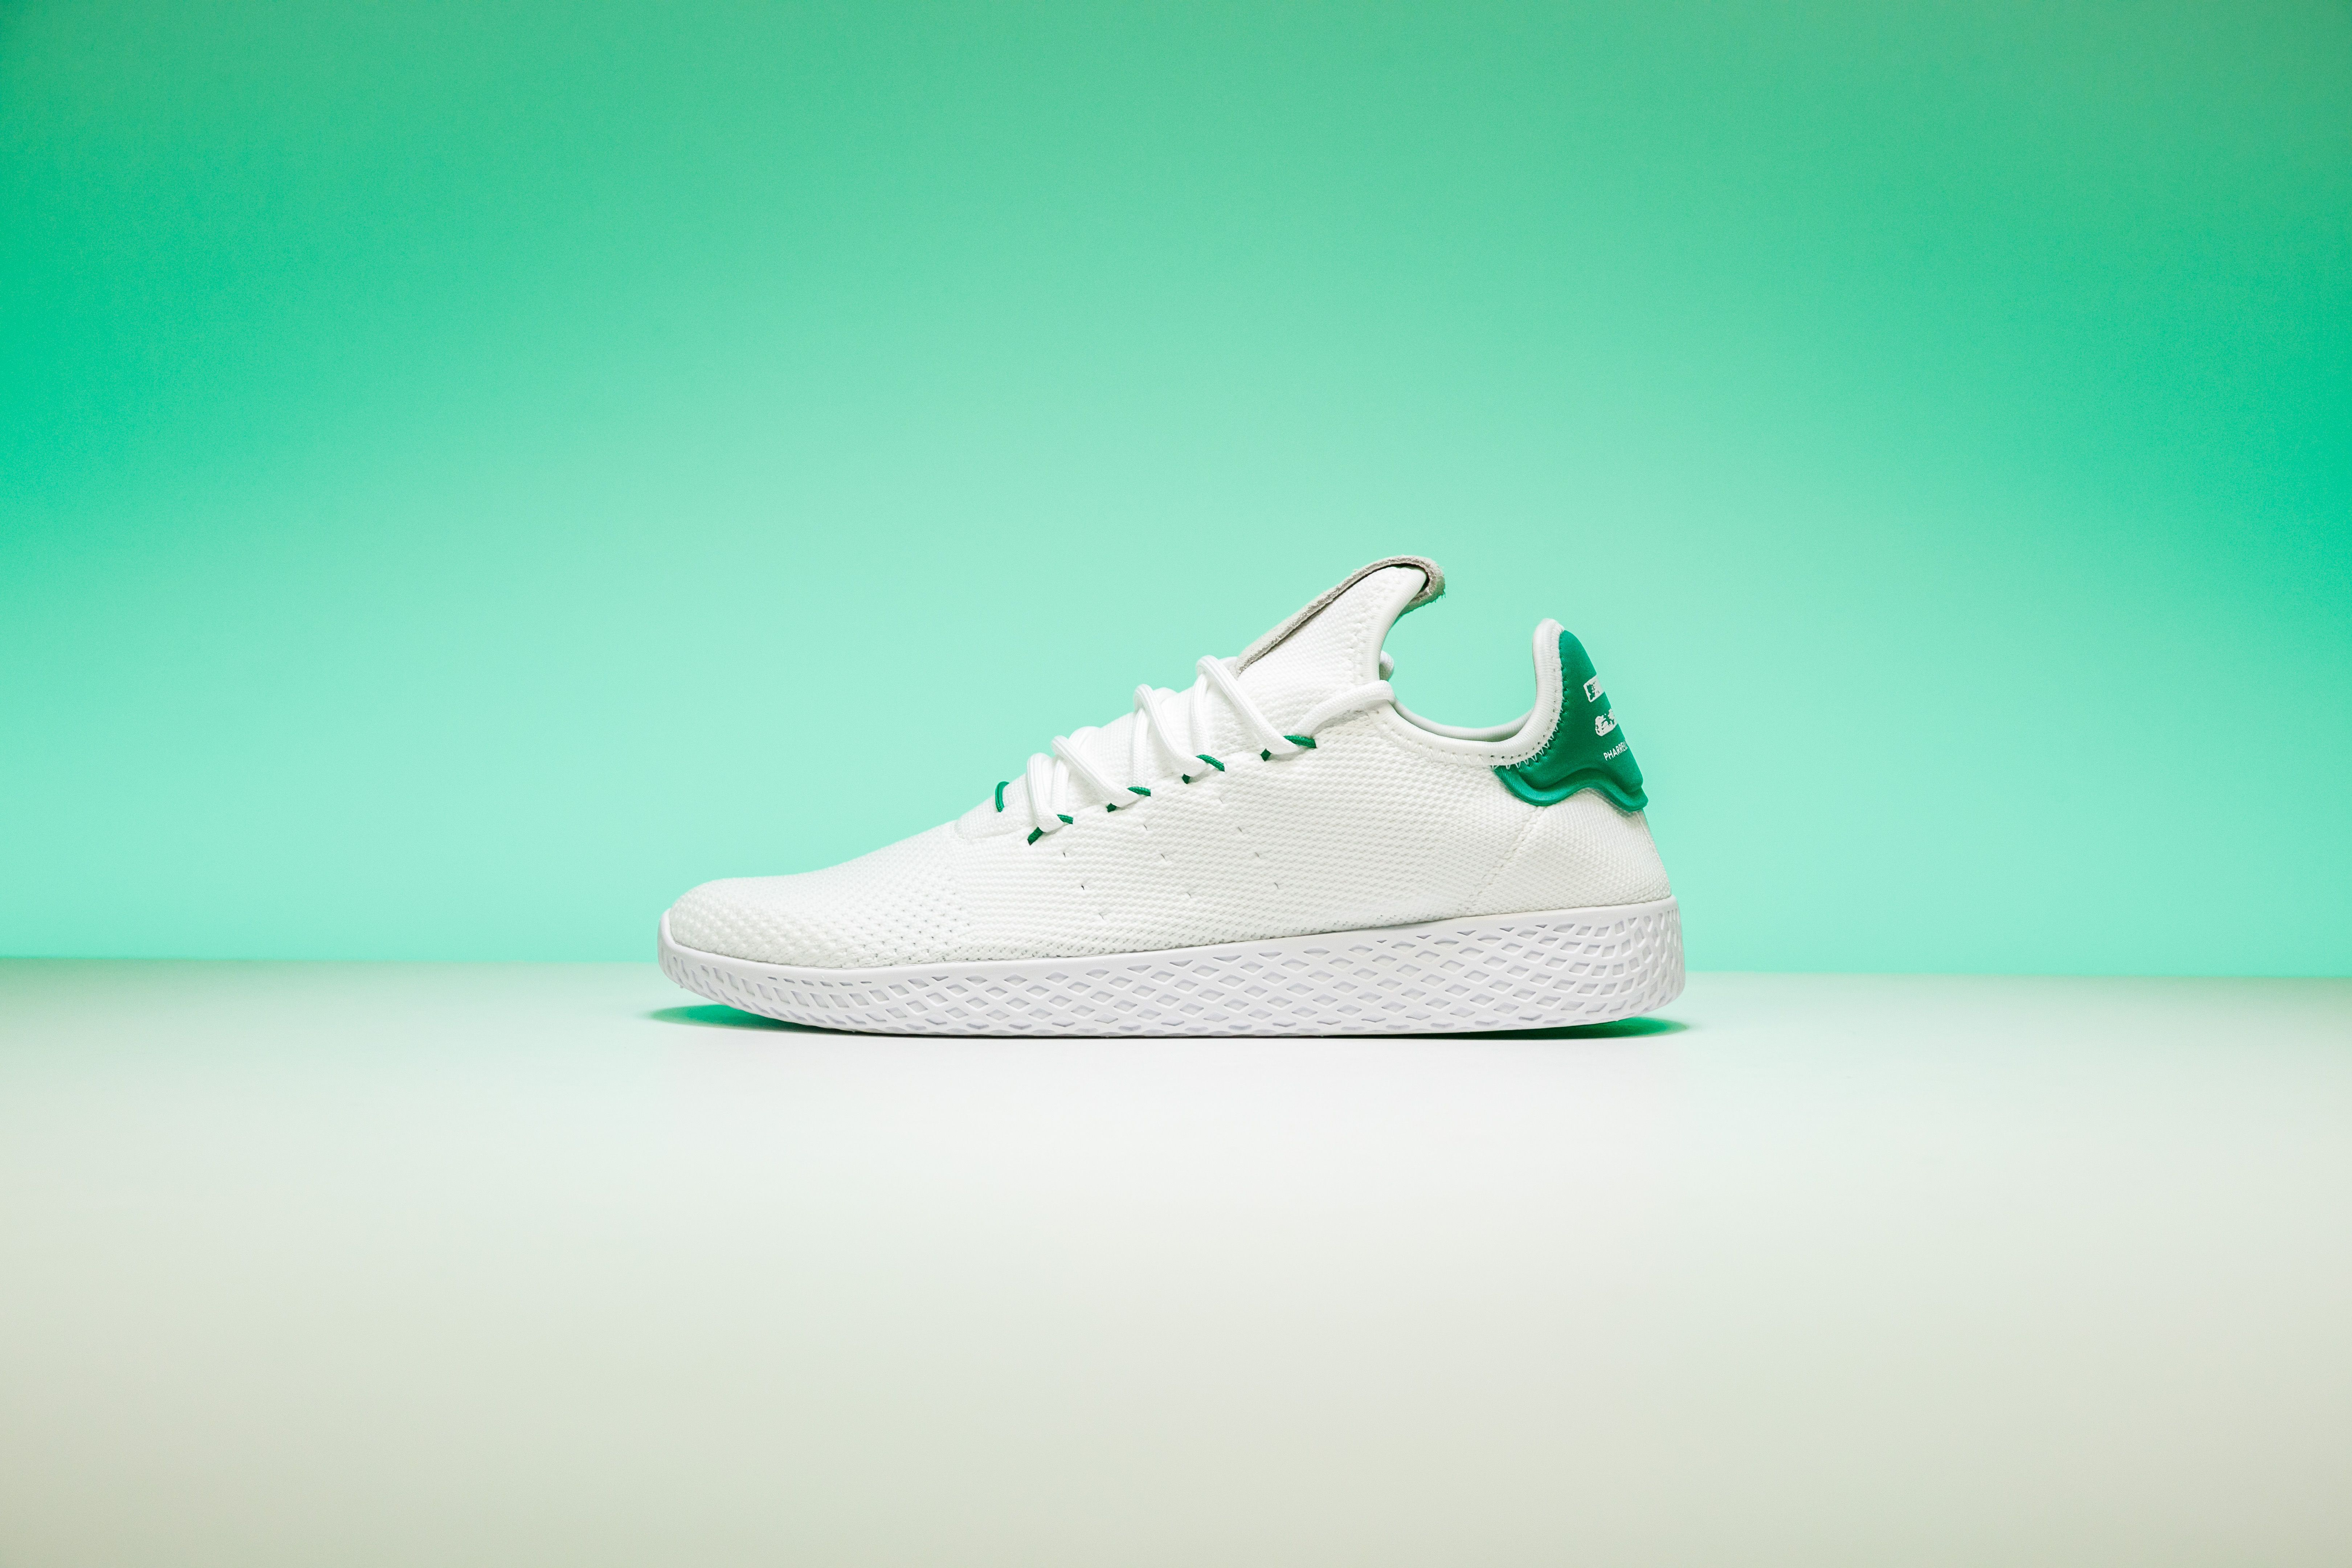 7161156a568a5 The iconic Stan Smith inspires Pharrell Williams  latest signature adidas  model